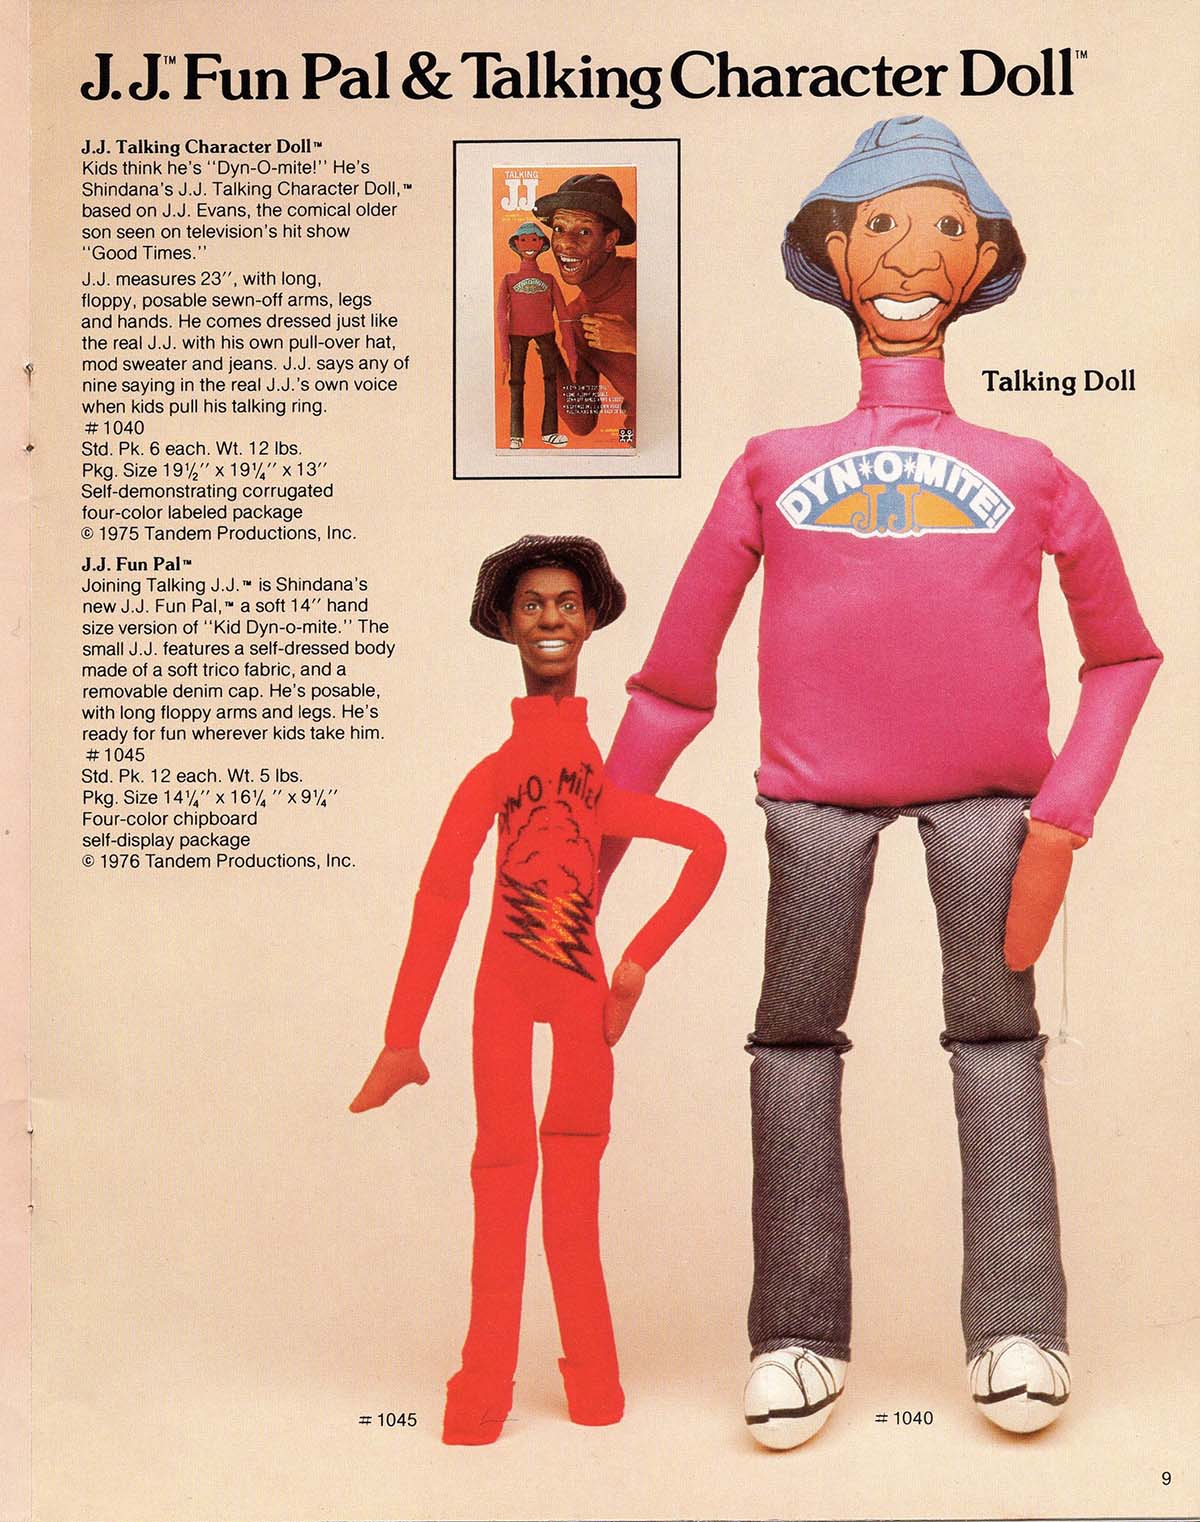 "The J.J. Fun Pal & Talking Character Doll was modeled after J.J. Evans, the comical older son on the hit TV show, ""Good Times""  